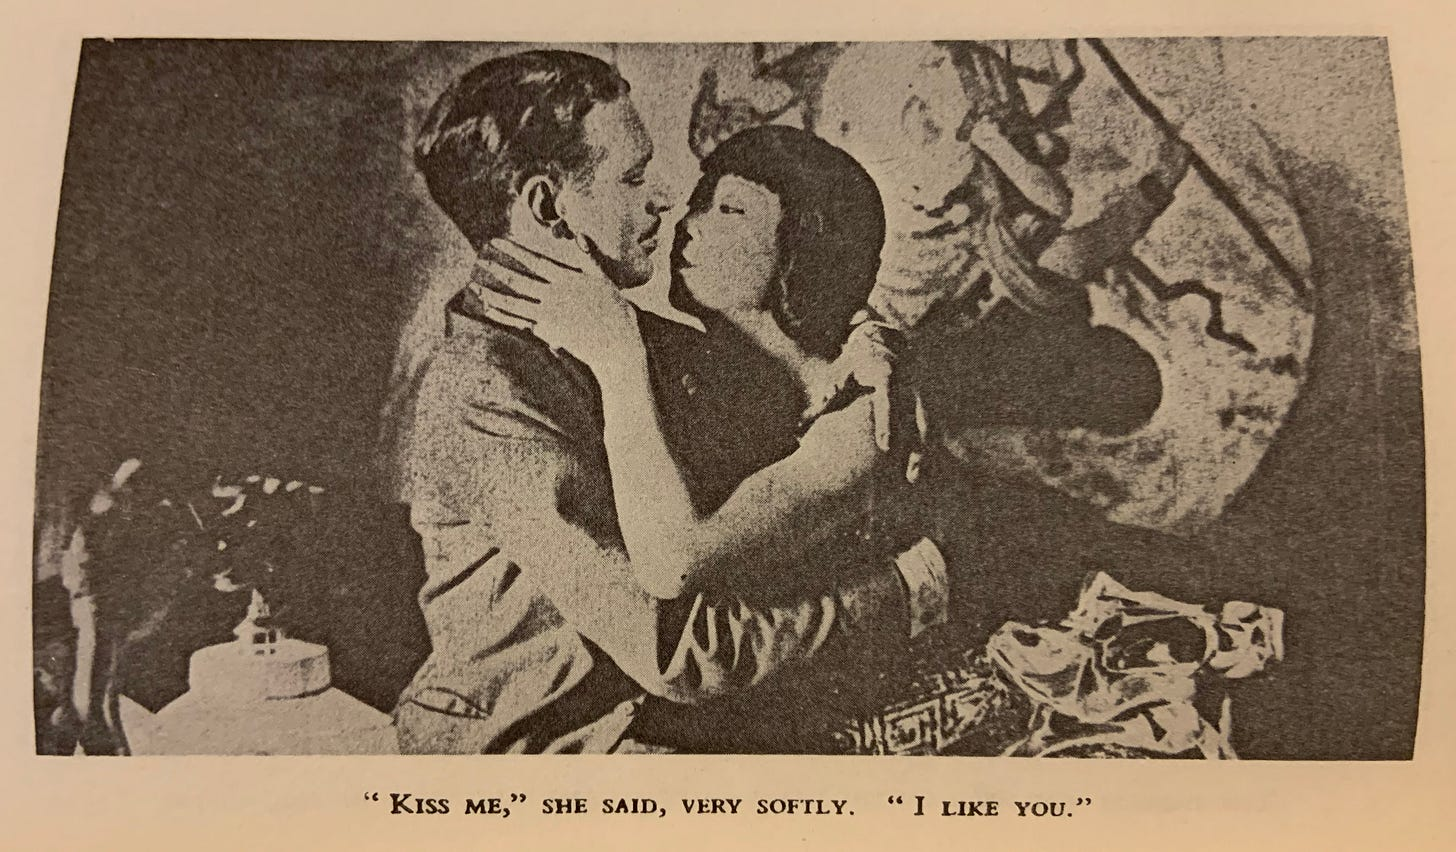 Anna May Wong embraces her co-star, Jameson Thomas, in Piccadilly, circa 1929. Their kiss was filmed but later cut from the final reel.